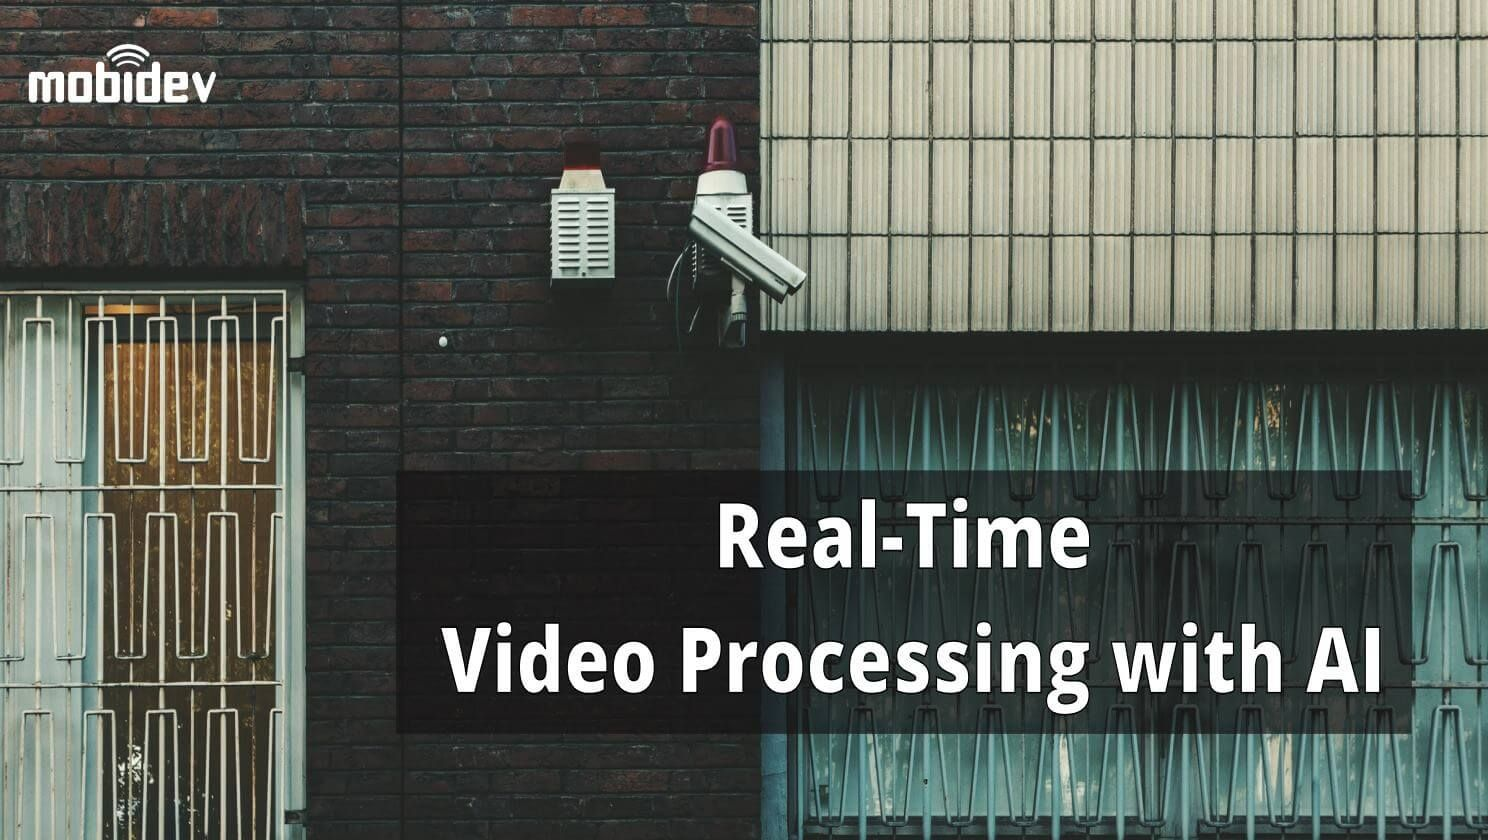 /how-to-create-ai-powered-real-time-video-processing-systems-0f3933ky feature image